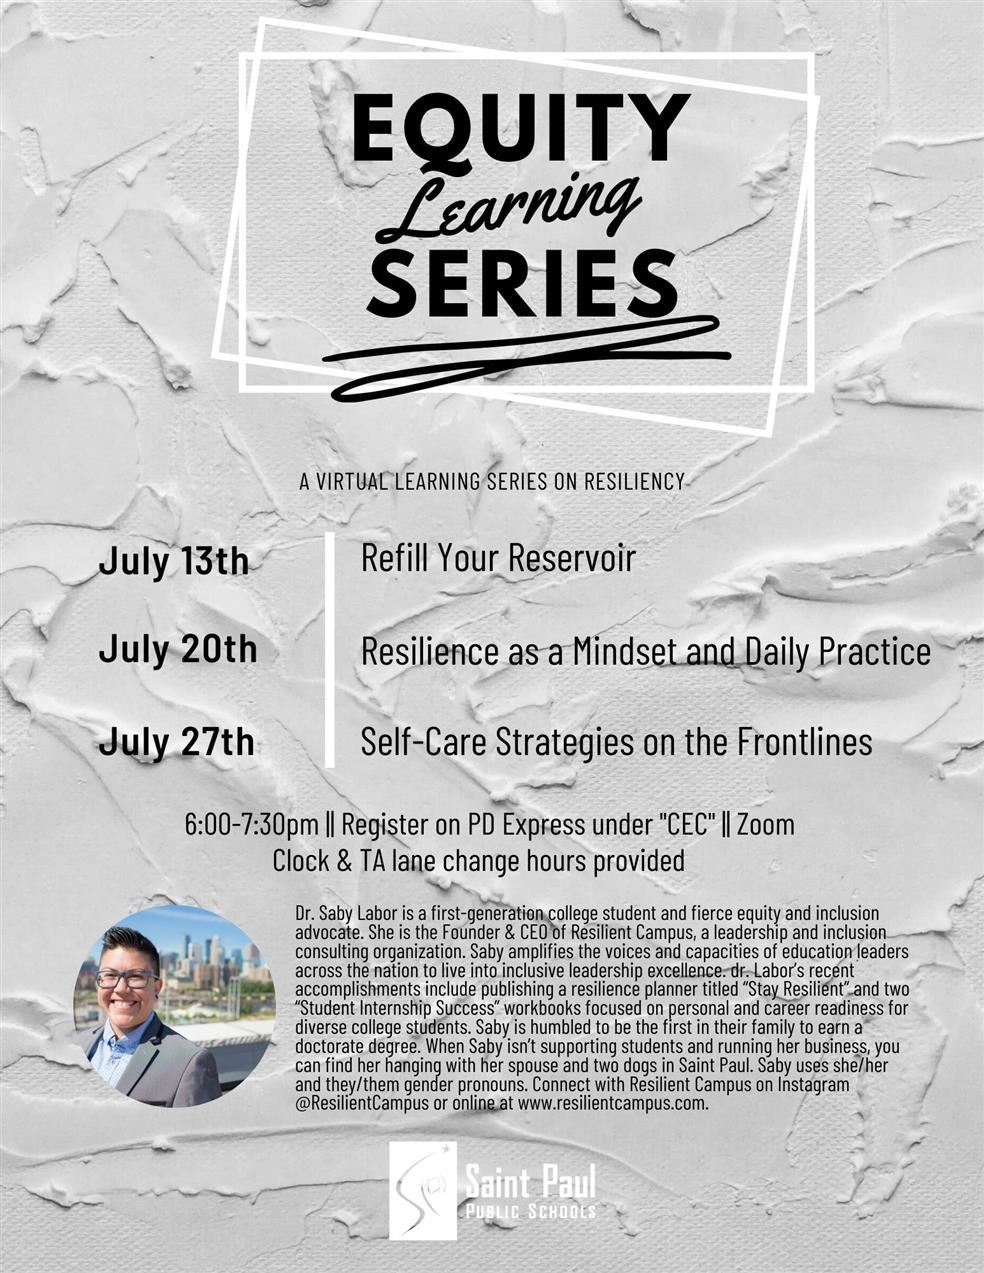 July Equity Learning Series: A Virtual Learning Series on Resiliency